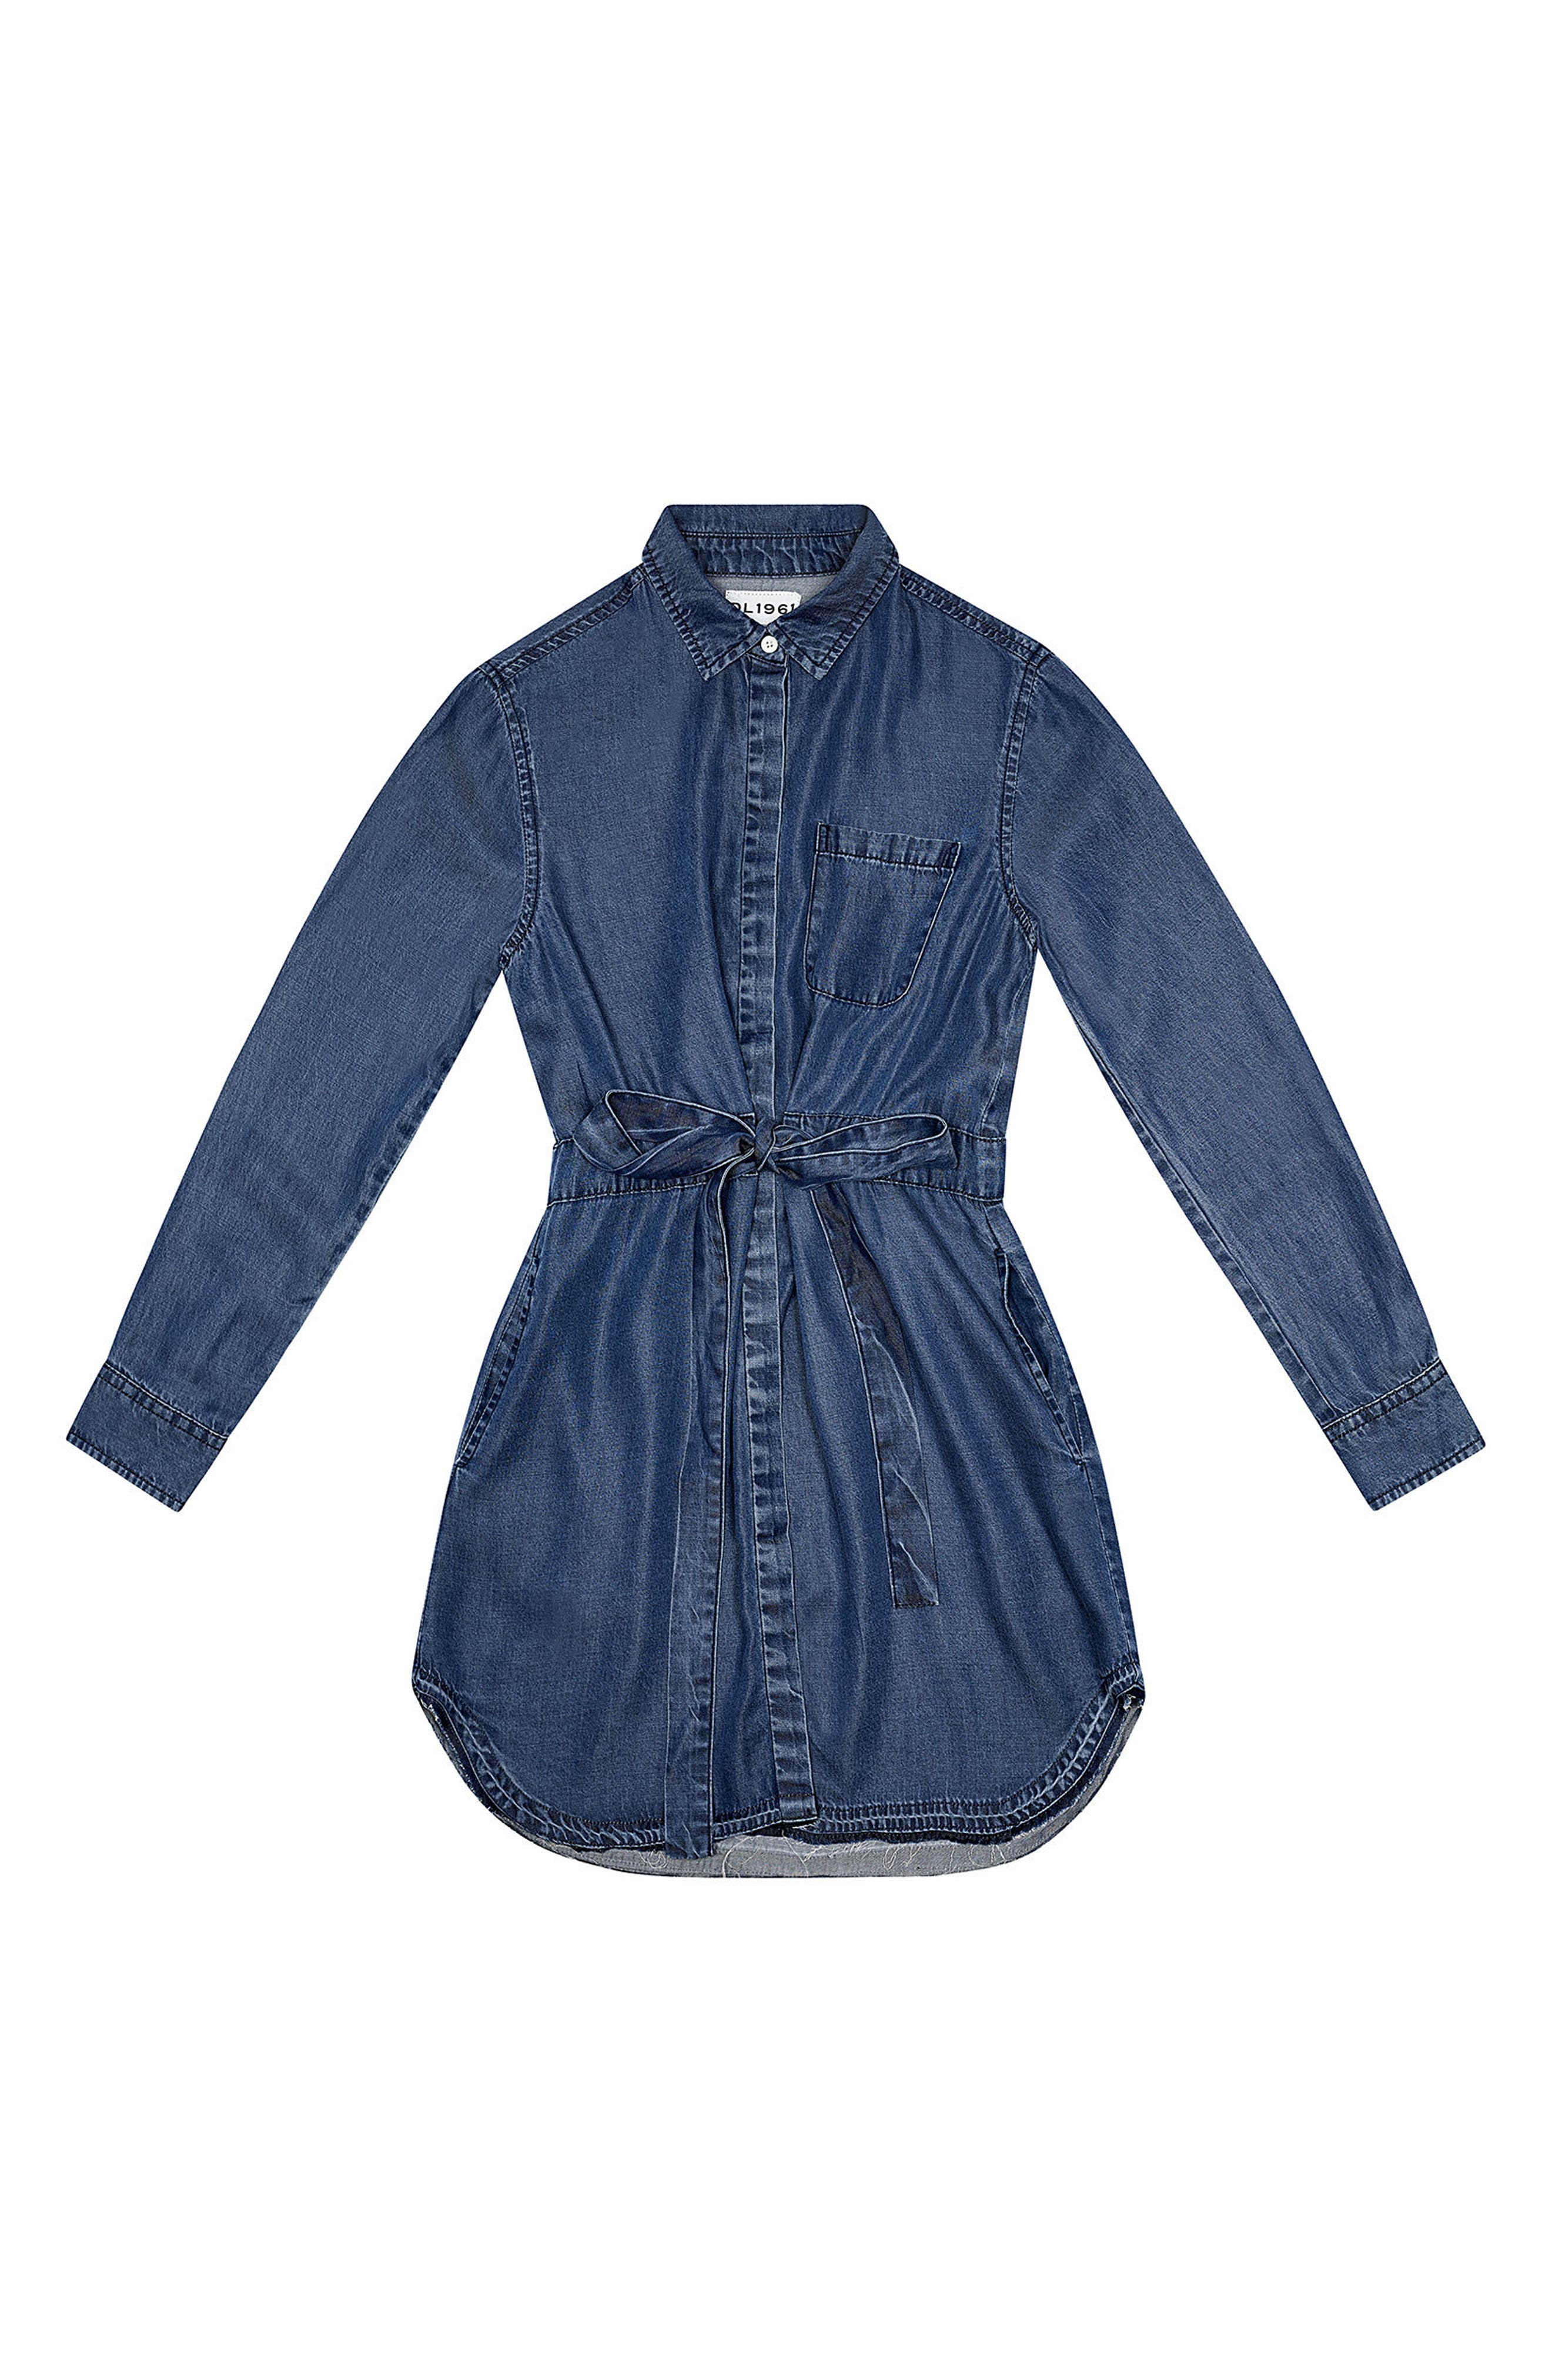 Main Image - DL1961 Chambray Shirtdress (Big Girls)